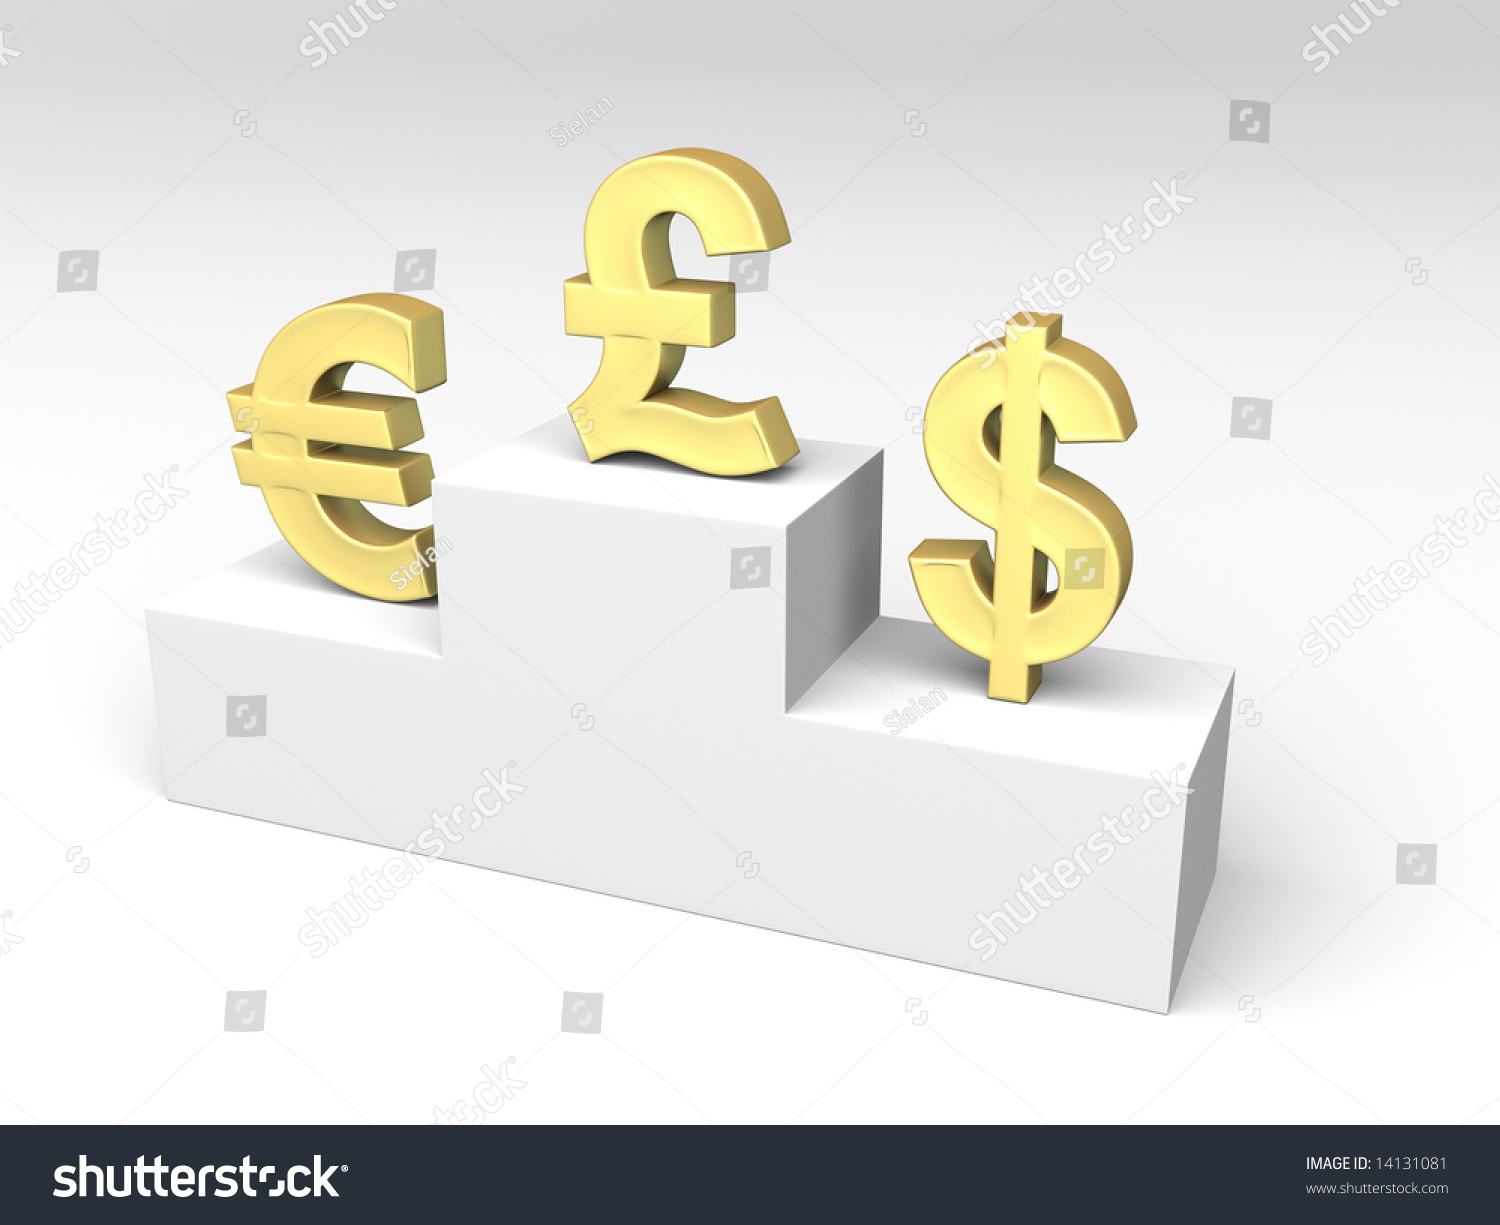 Currencies Exchange Rates Shown By Some Stock Illustration 14131081